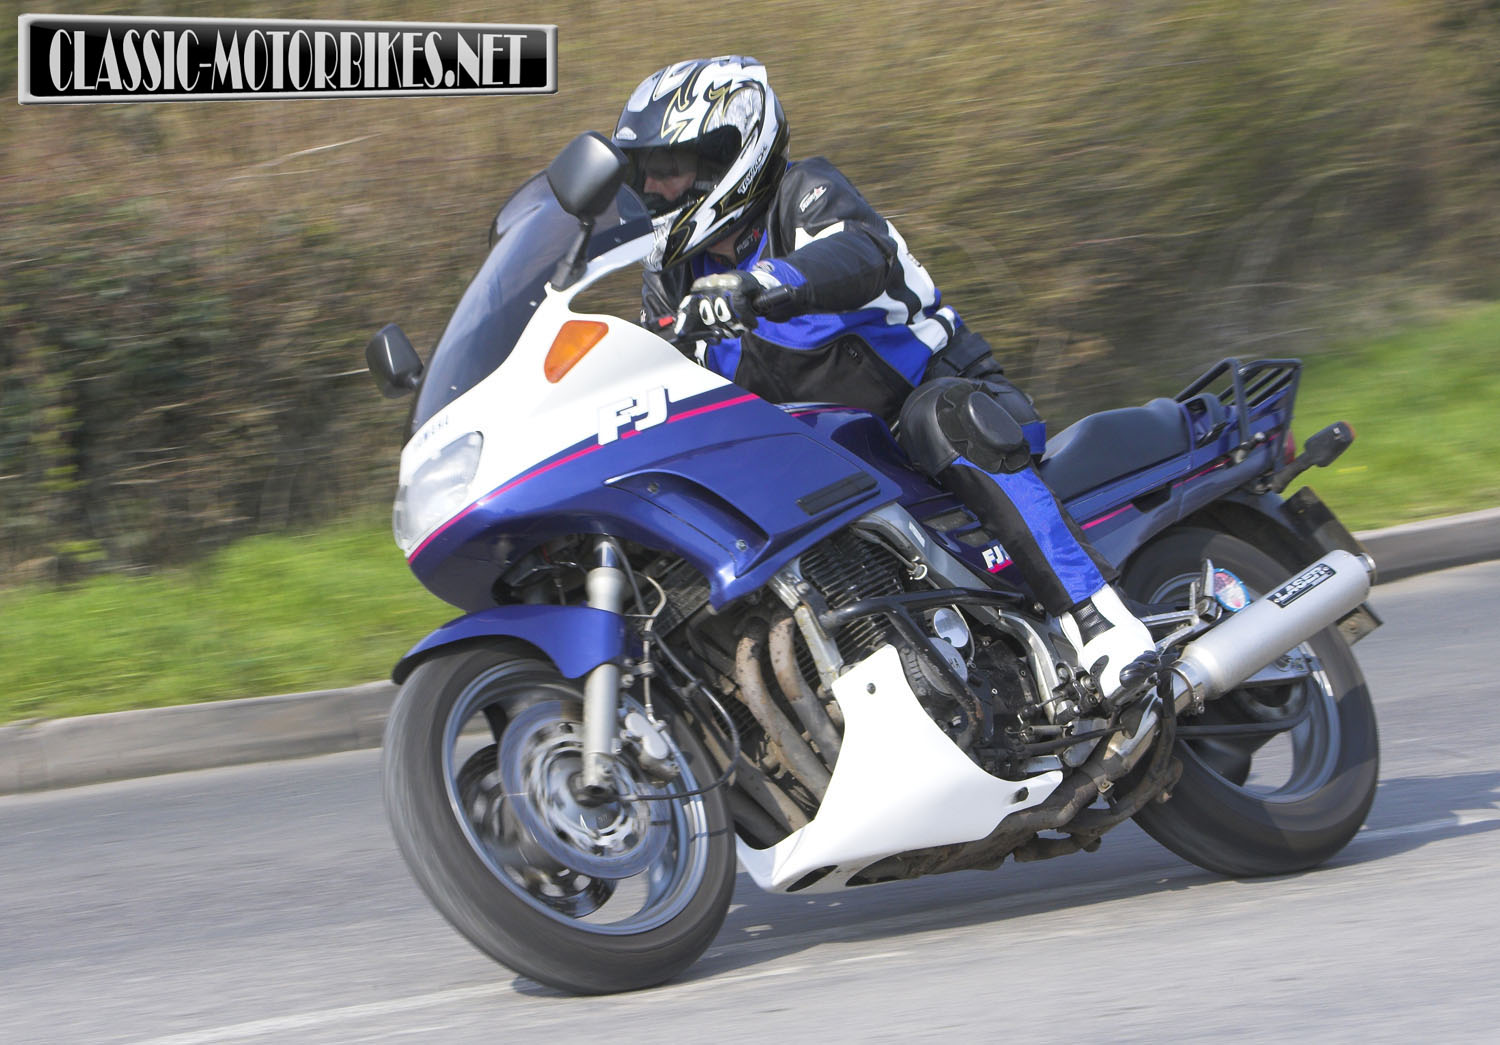 Yamaha FJ 1200 A (ABS) (reduced effect) #11